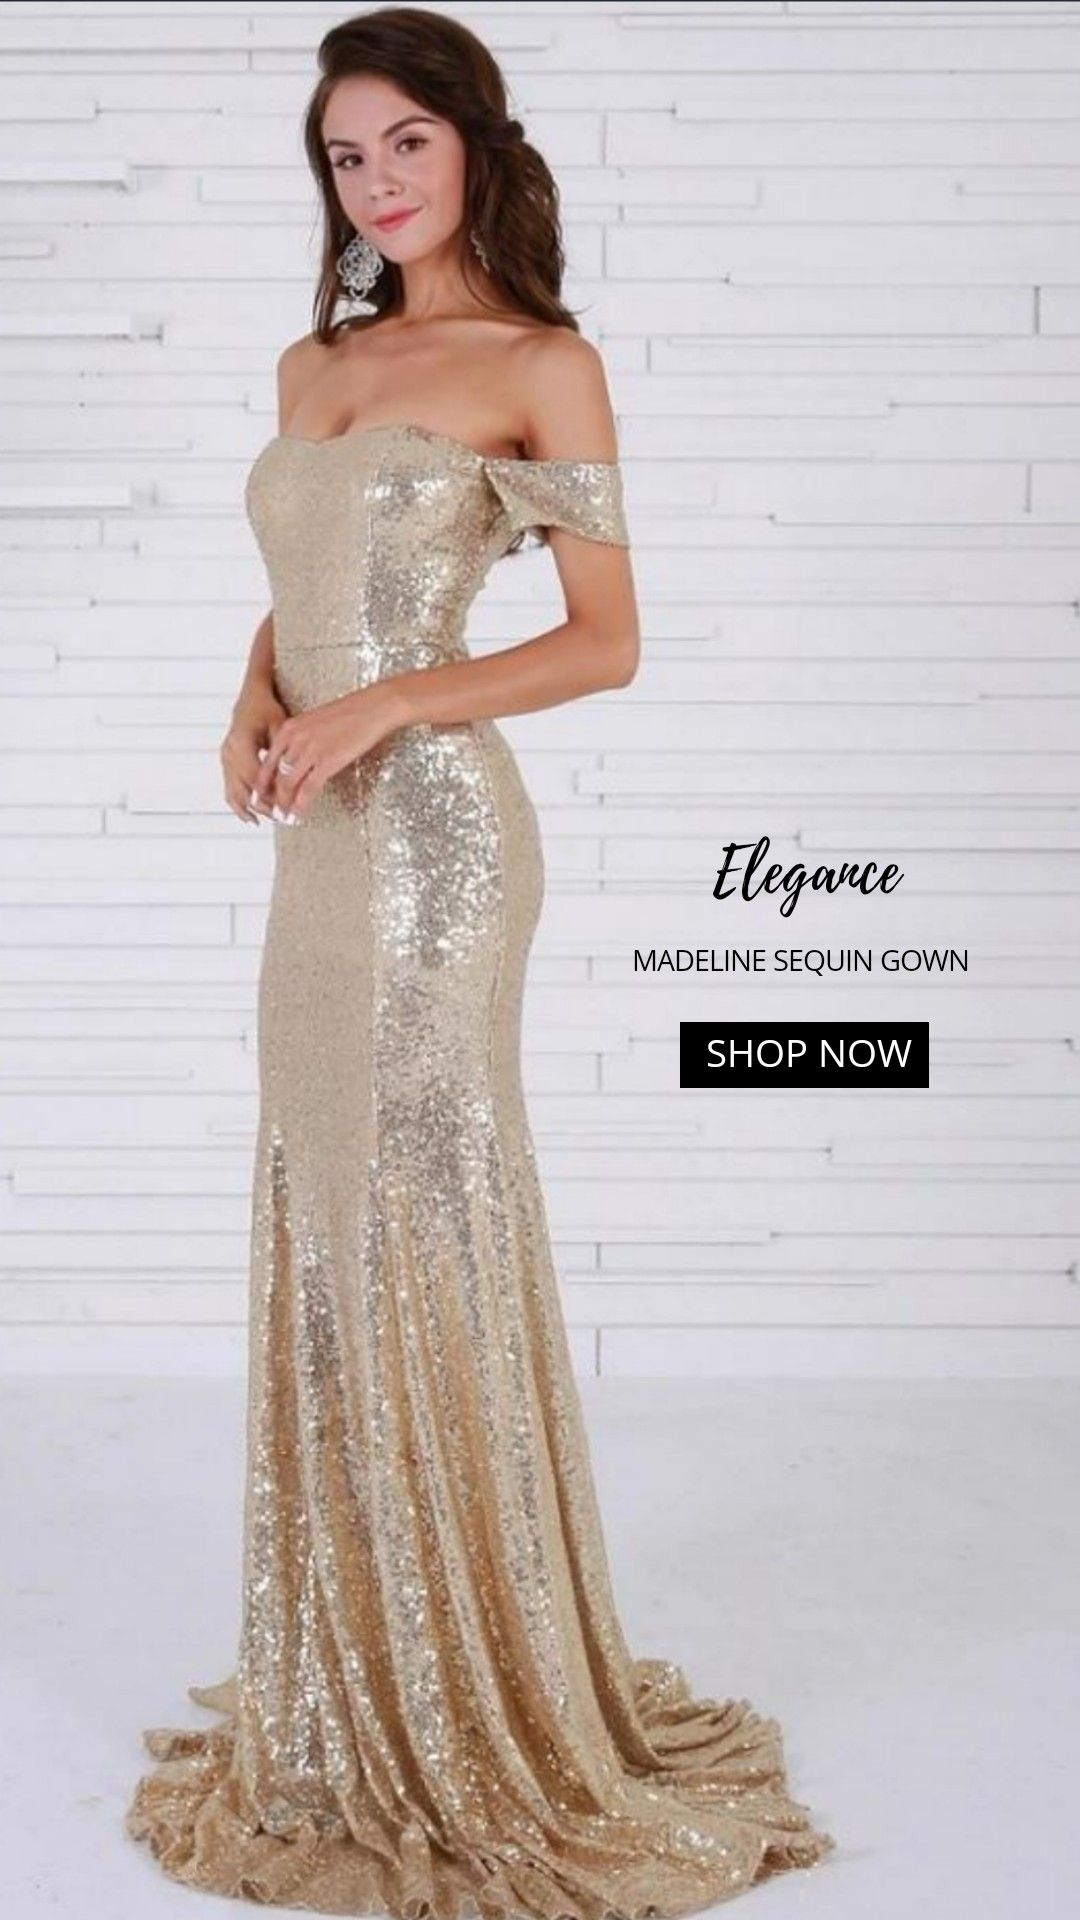 Madeline sequin gown in top glam shop sequin dresses